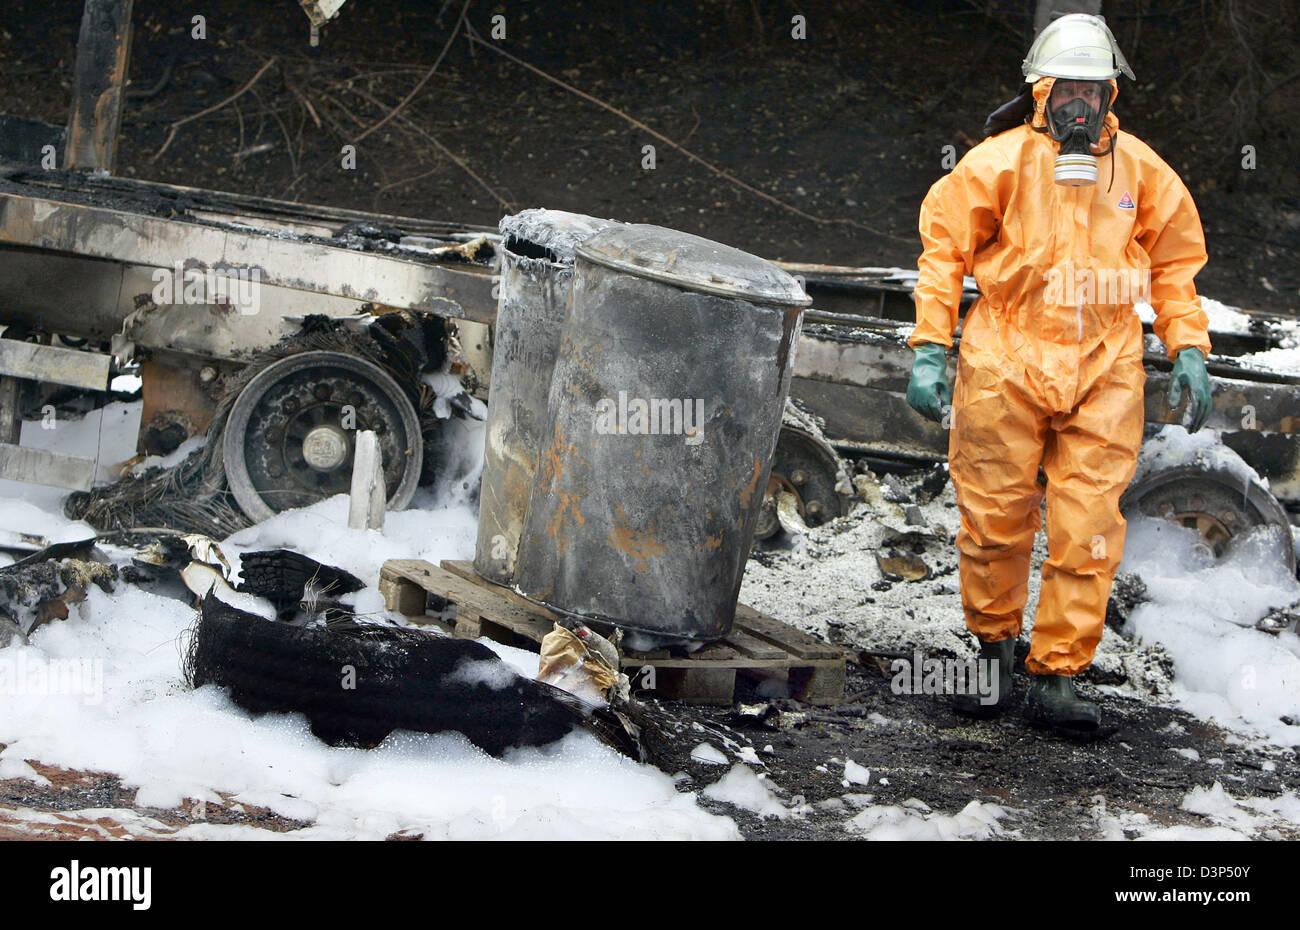 A fire fighter in protective clothing clears the scene of accident of the hazardous materials of an hazmat transportation - Stock Image